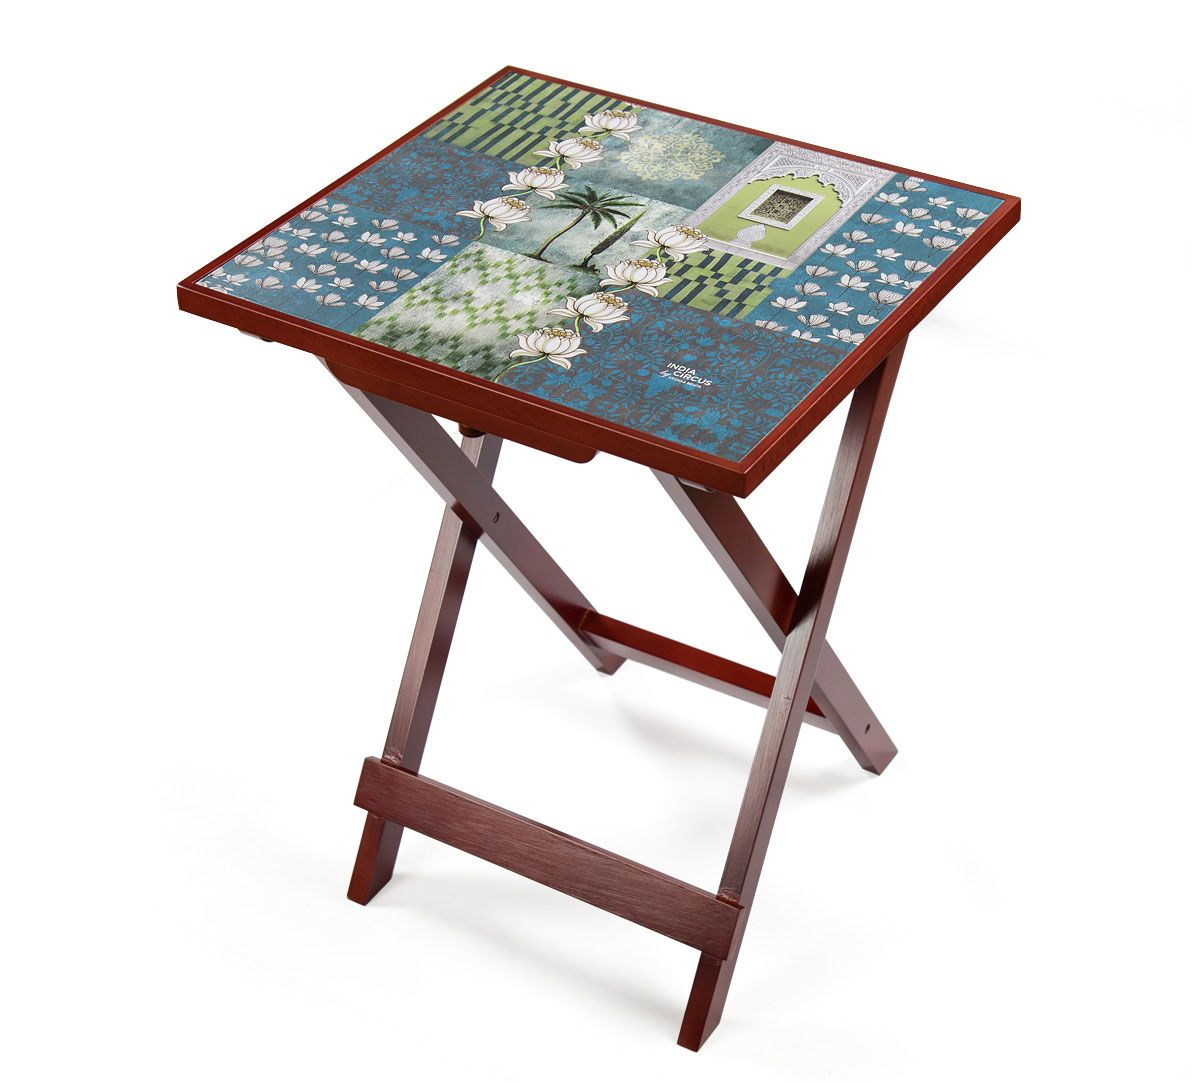 India Circus Teal Tiled Lotus Extravaganza Side Table